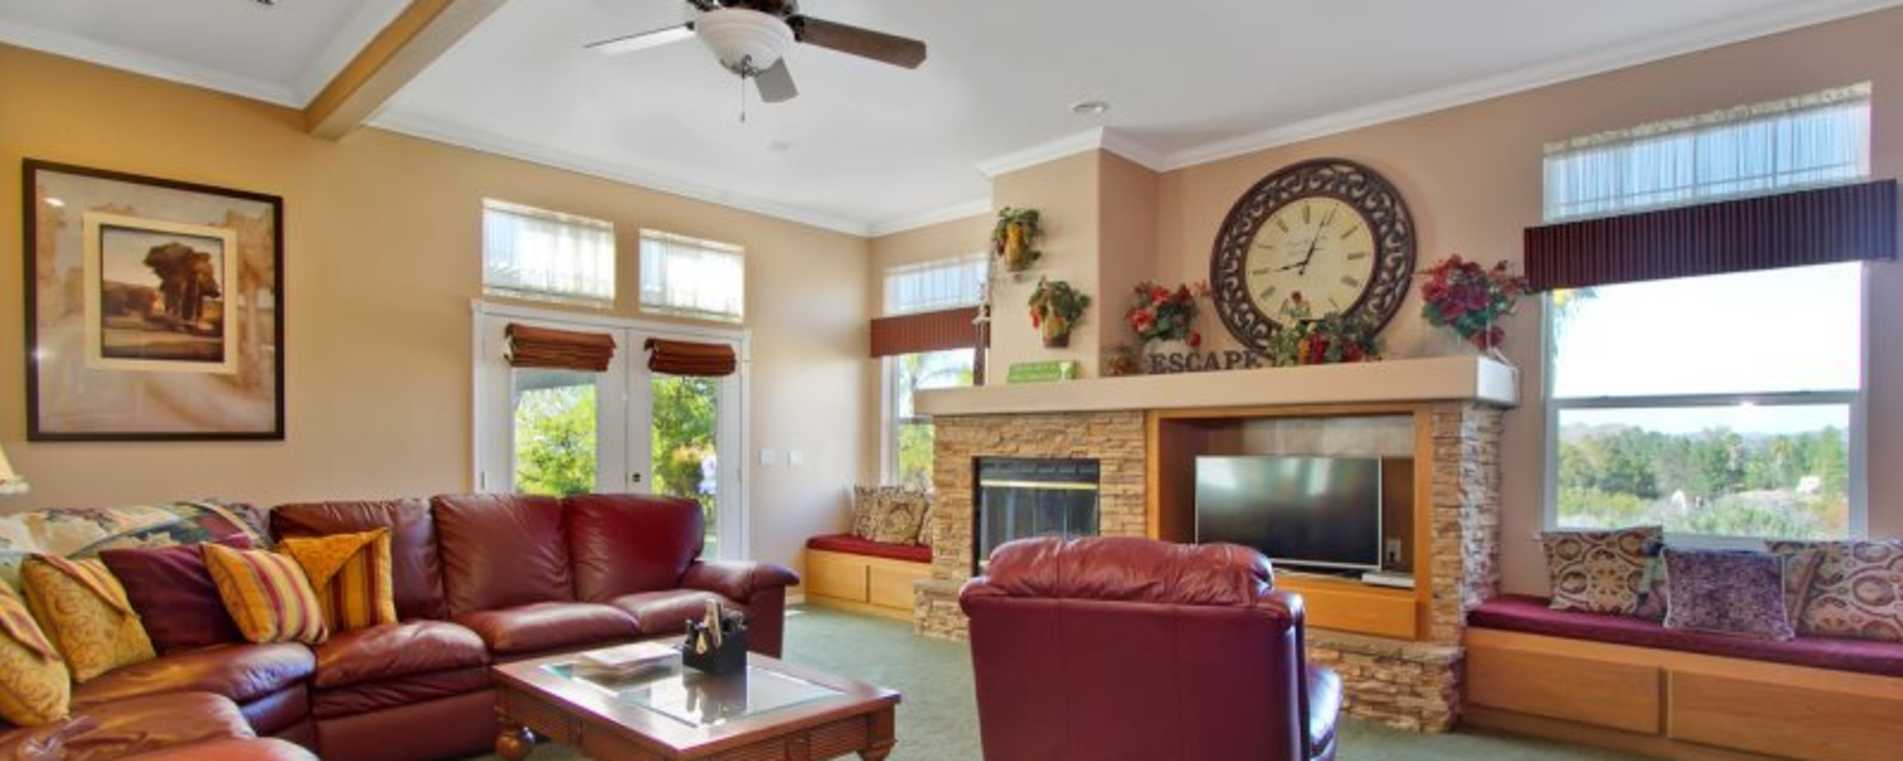 Interior - Bailey's Wine Country Escape/Temecula Vacation Rentals